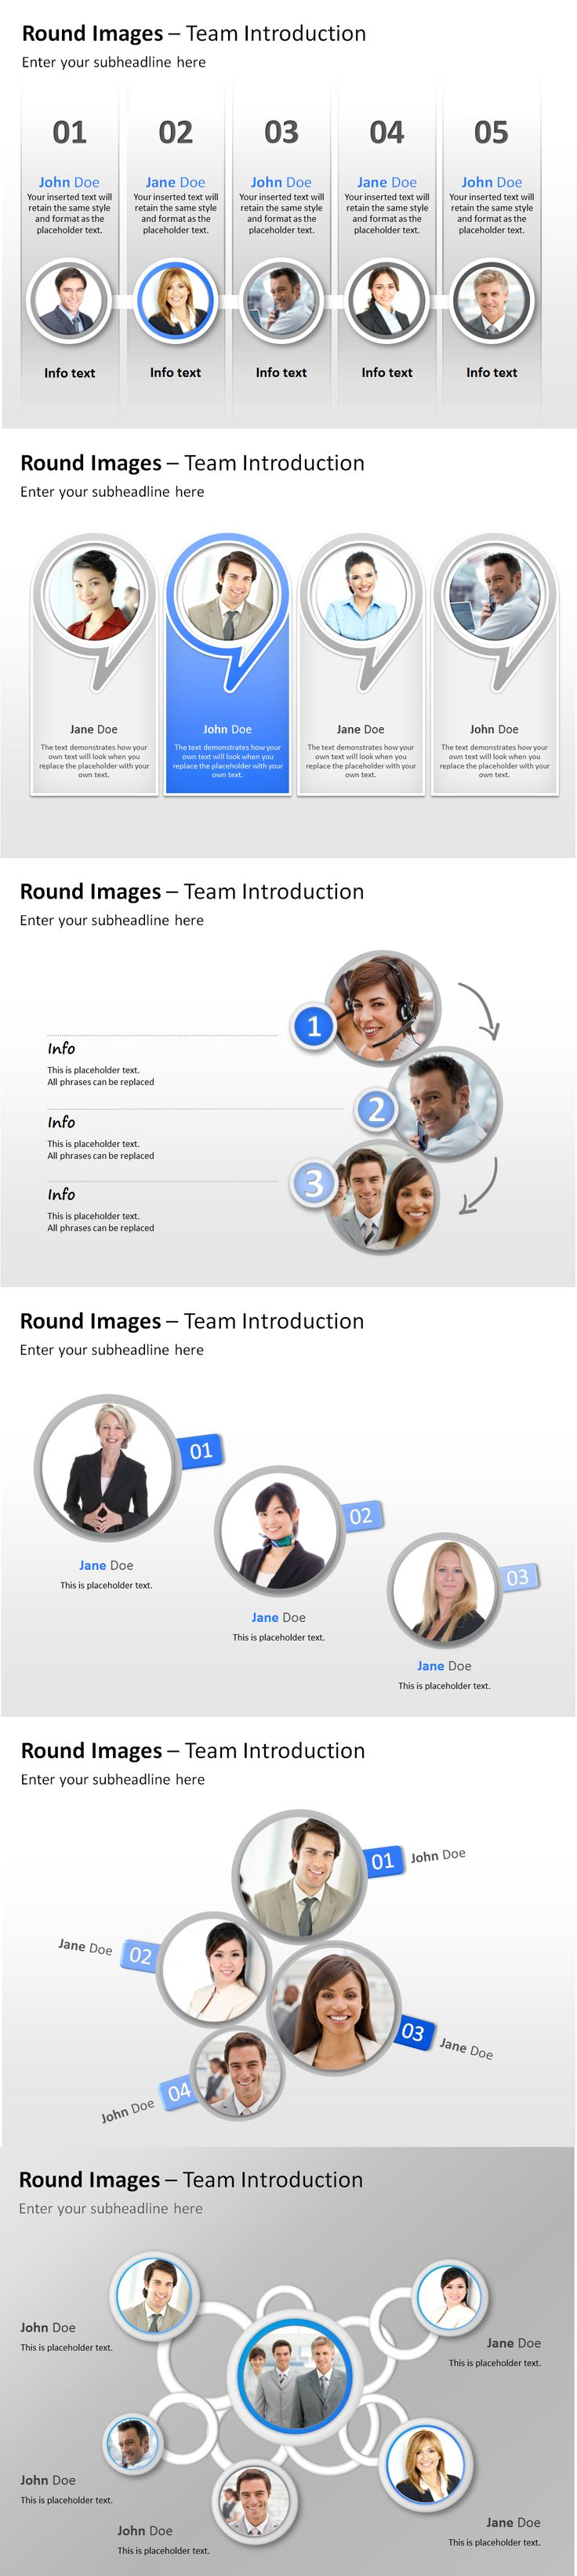 The Round Images Placeholder #PowerPoint templates are optimal for presenting people, teams and groups.